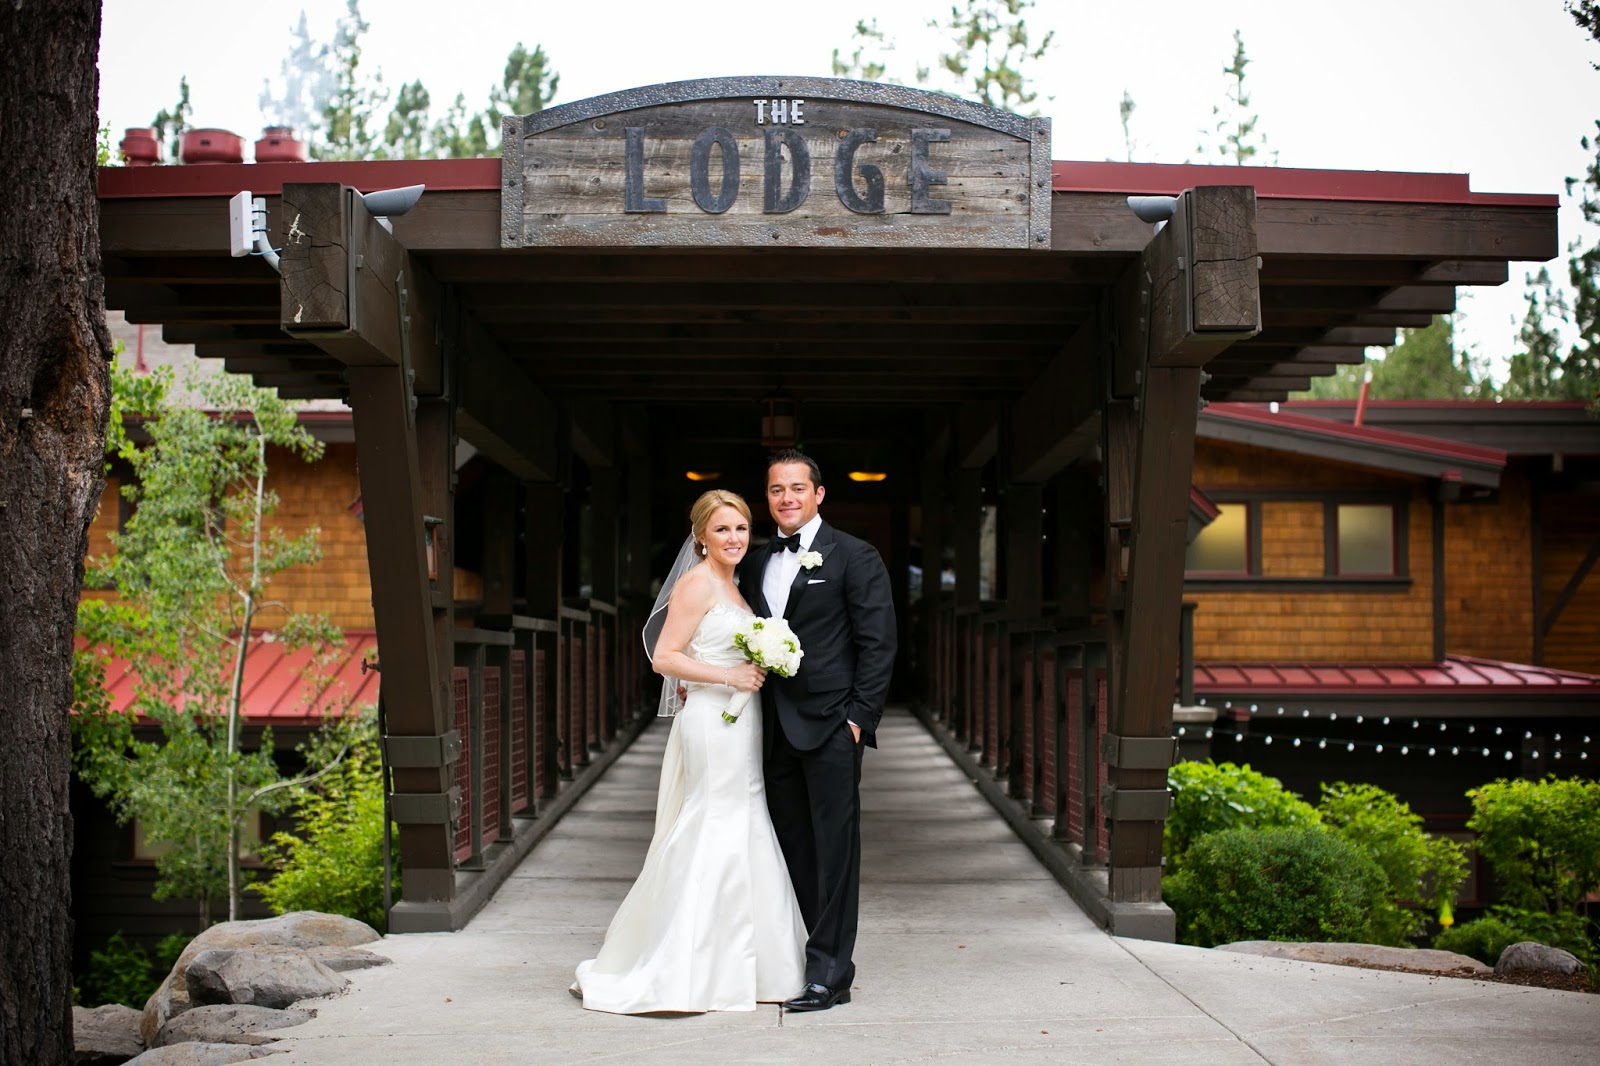 Tahoe Mountain Wedding // The Lodge at Tahoe Donner // Kacie Jean Photography // Take the Cake Event Planning